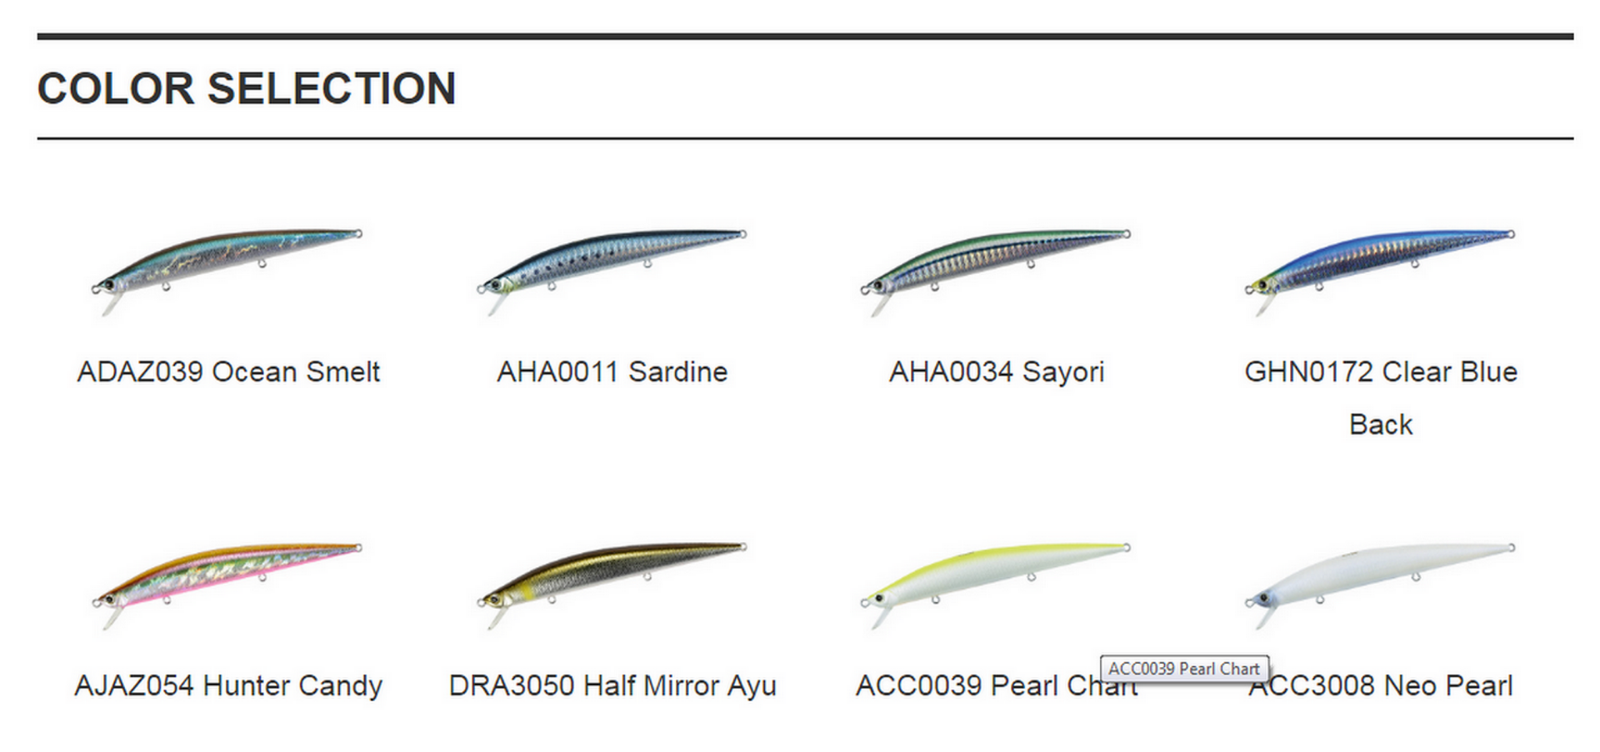 Select Color DUO Tide Minnow Slim 175 Flyer Saltwater Sinking Lure s